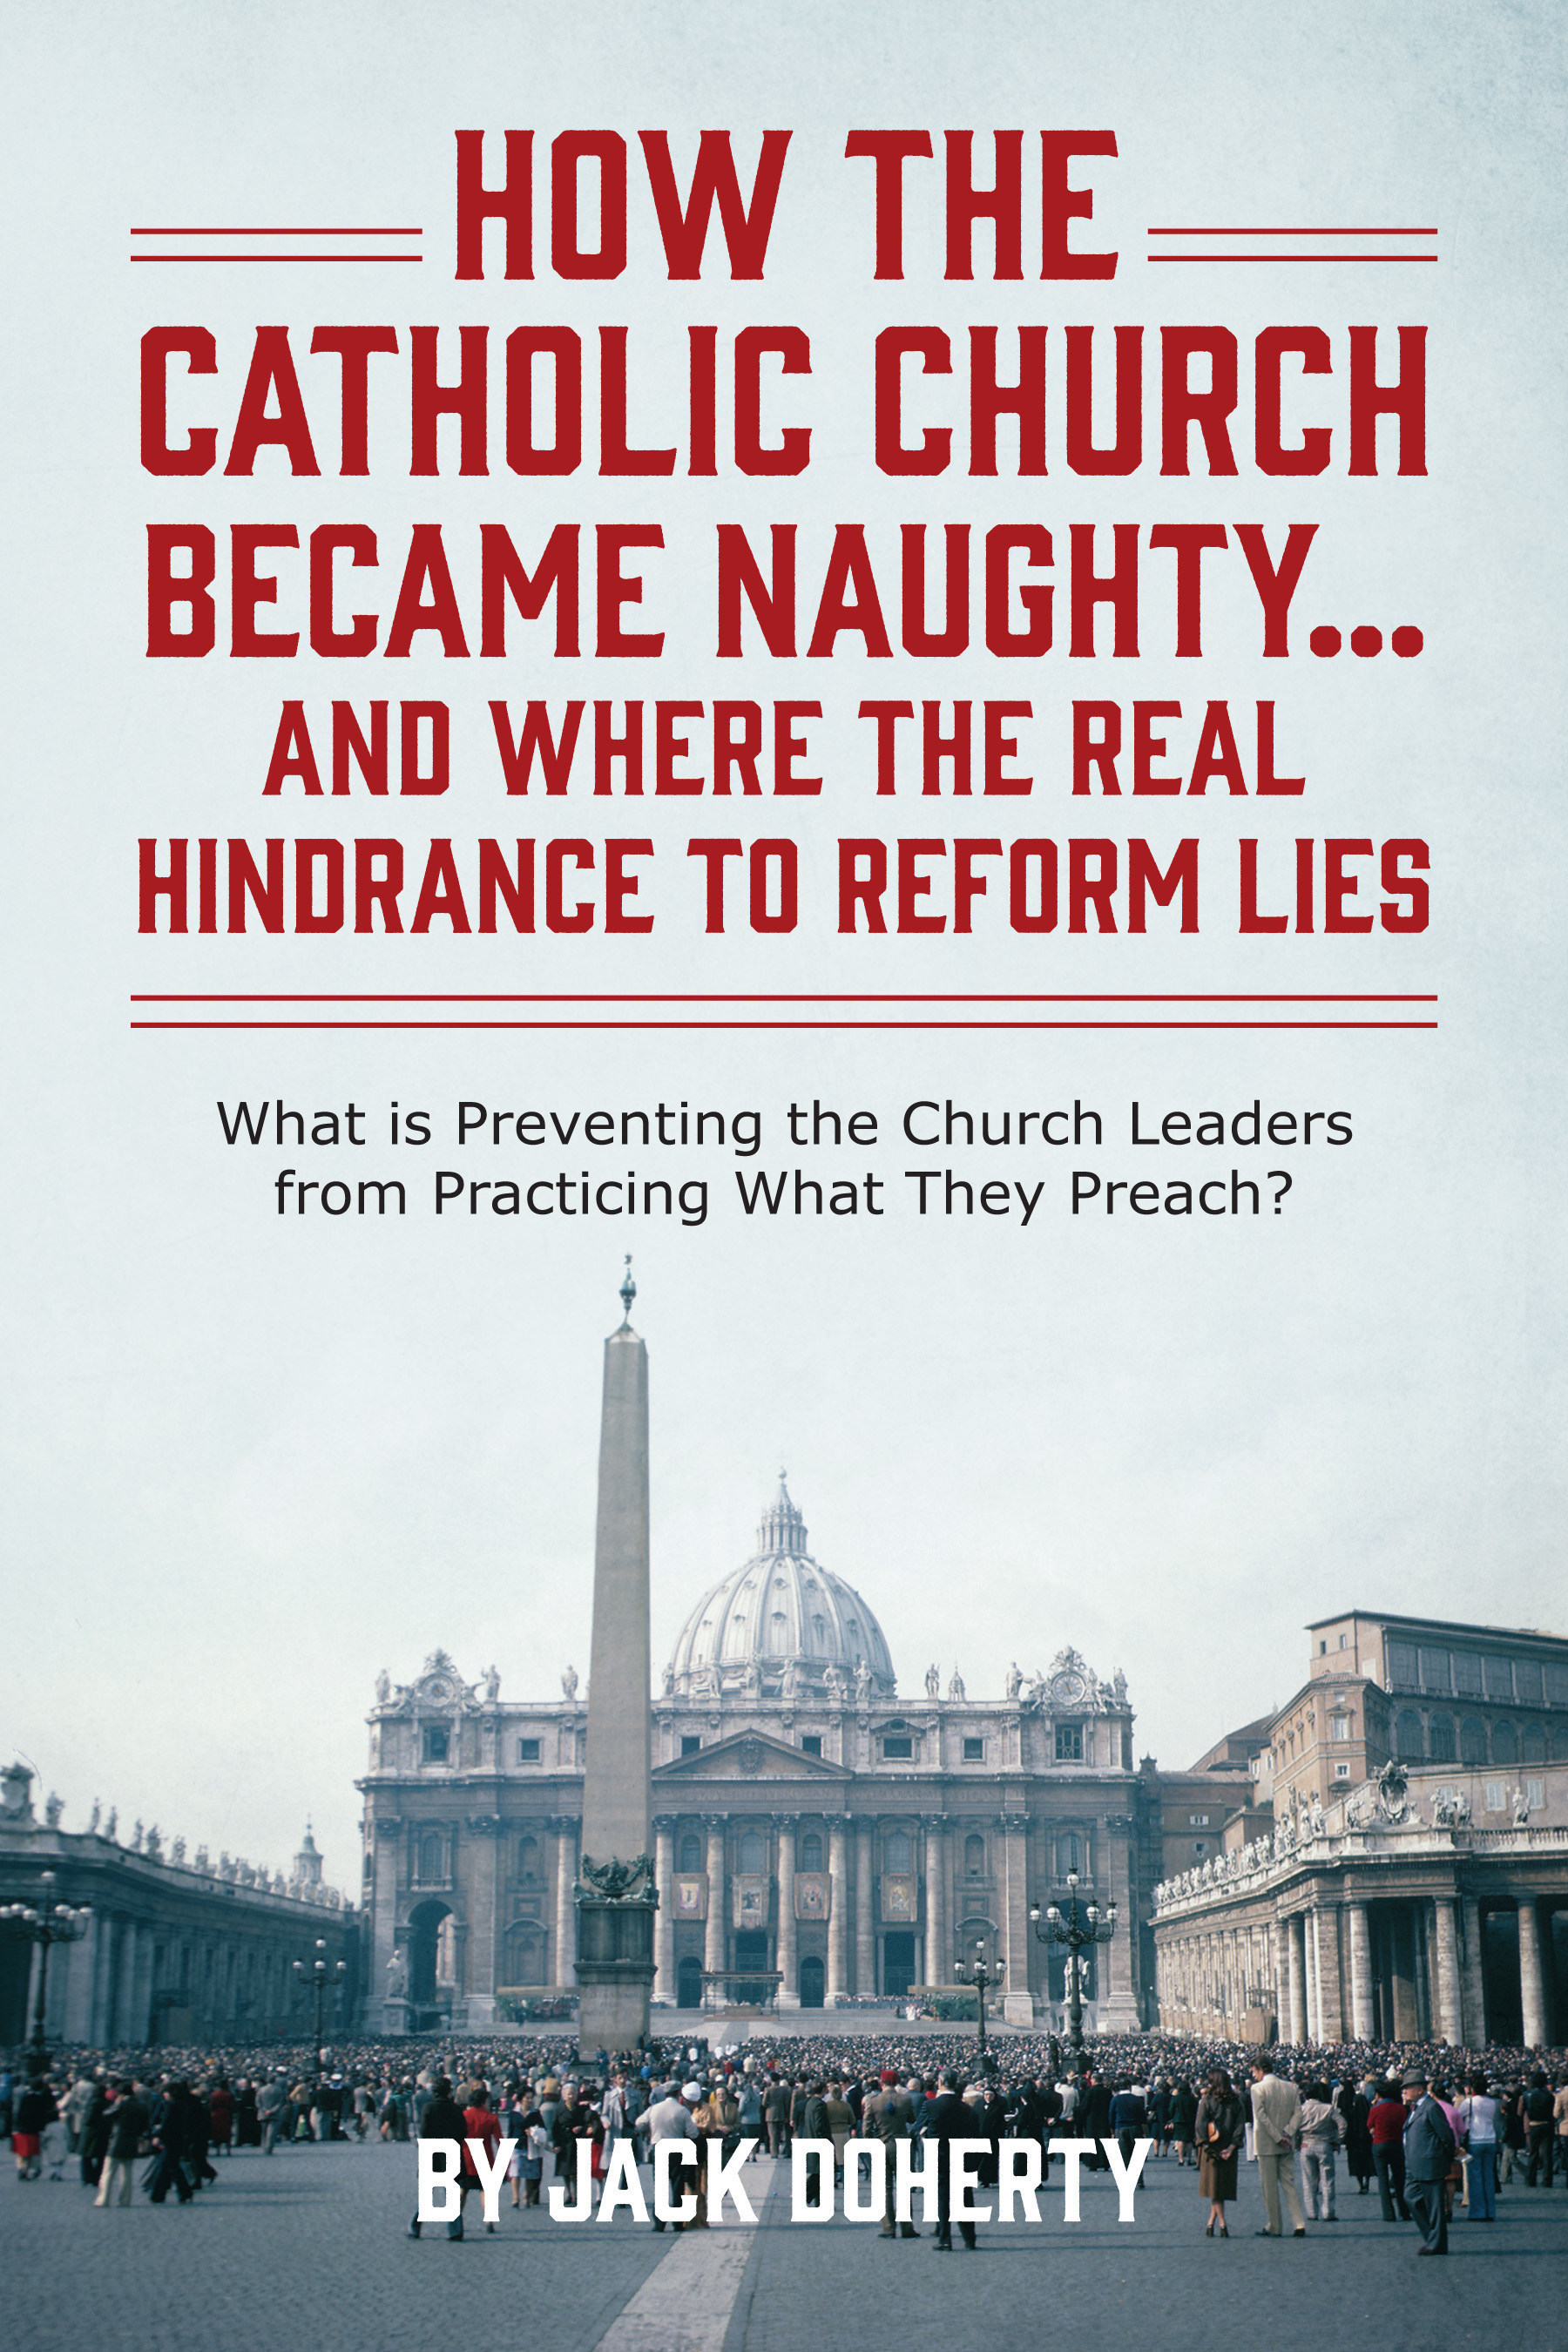 Author Goes Beyond Criticism and Offers Solutions to Naughty Catholic Church